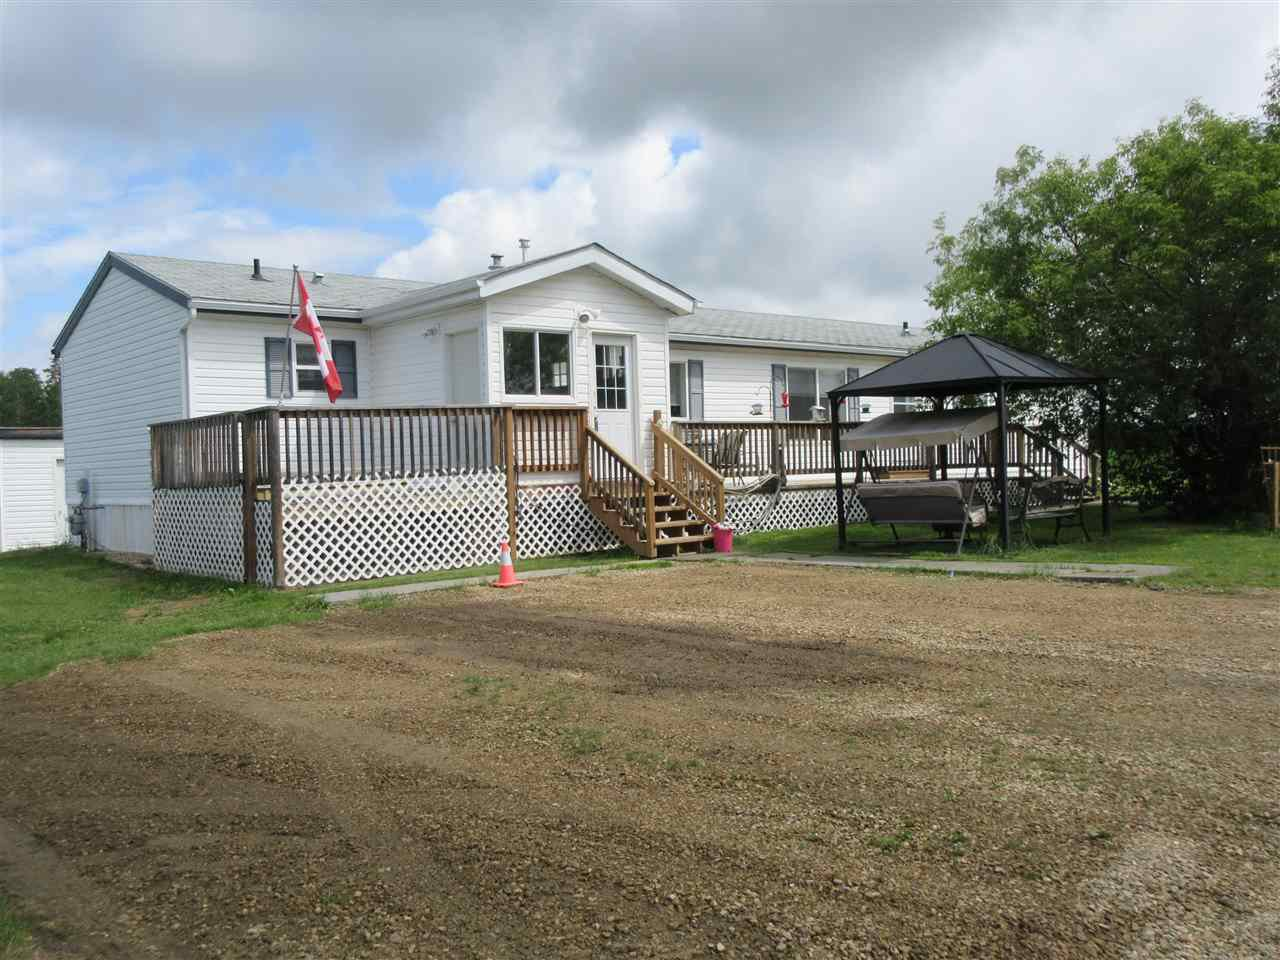 Main Photo: 27332 Sec Hwy 651: Rural Westlock County House for sale : MLS®# E4204094